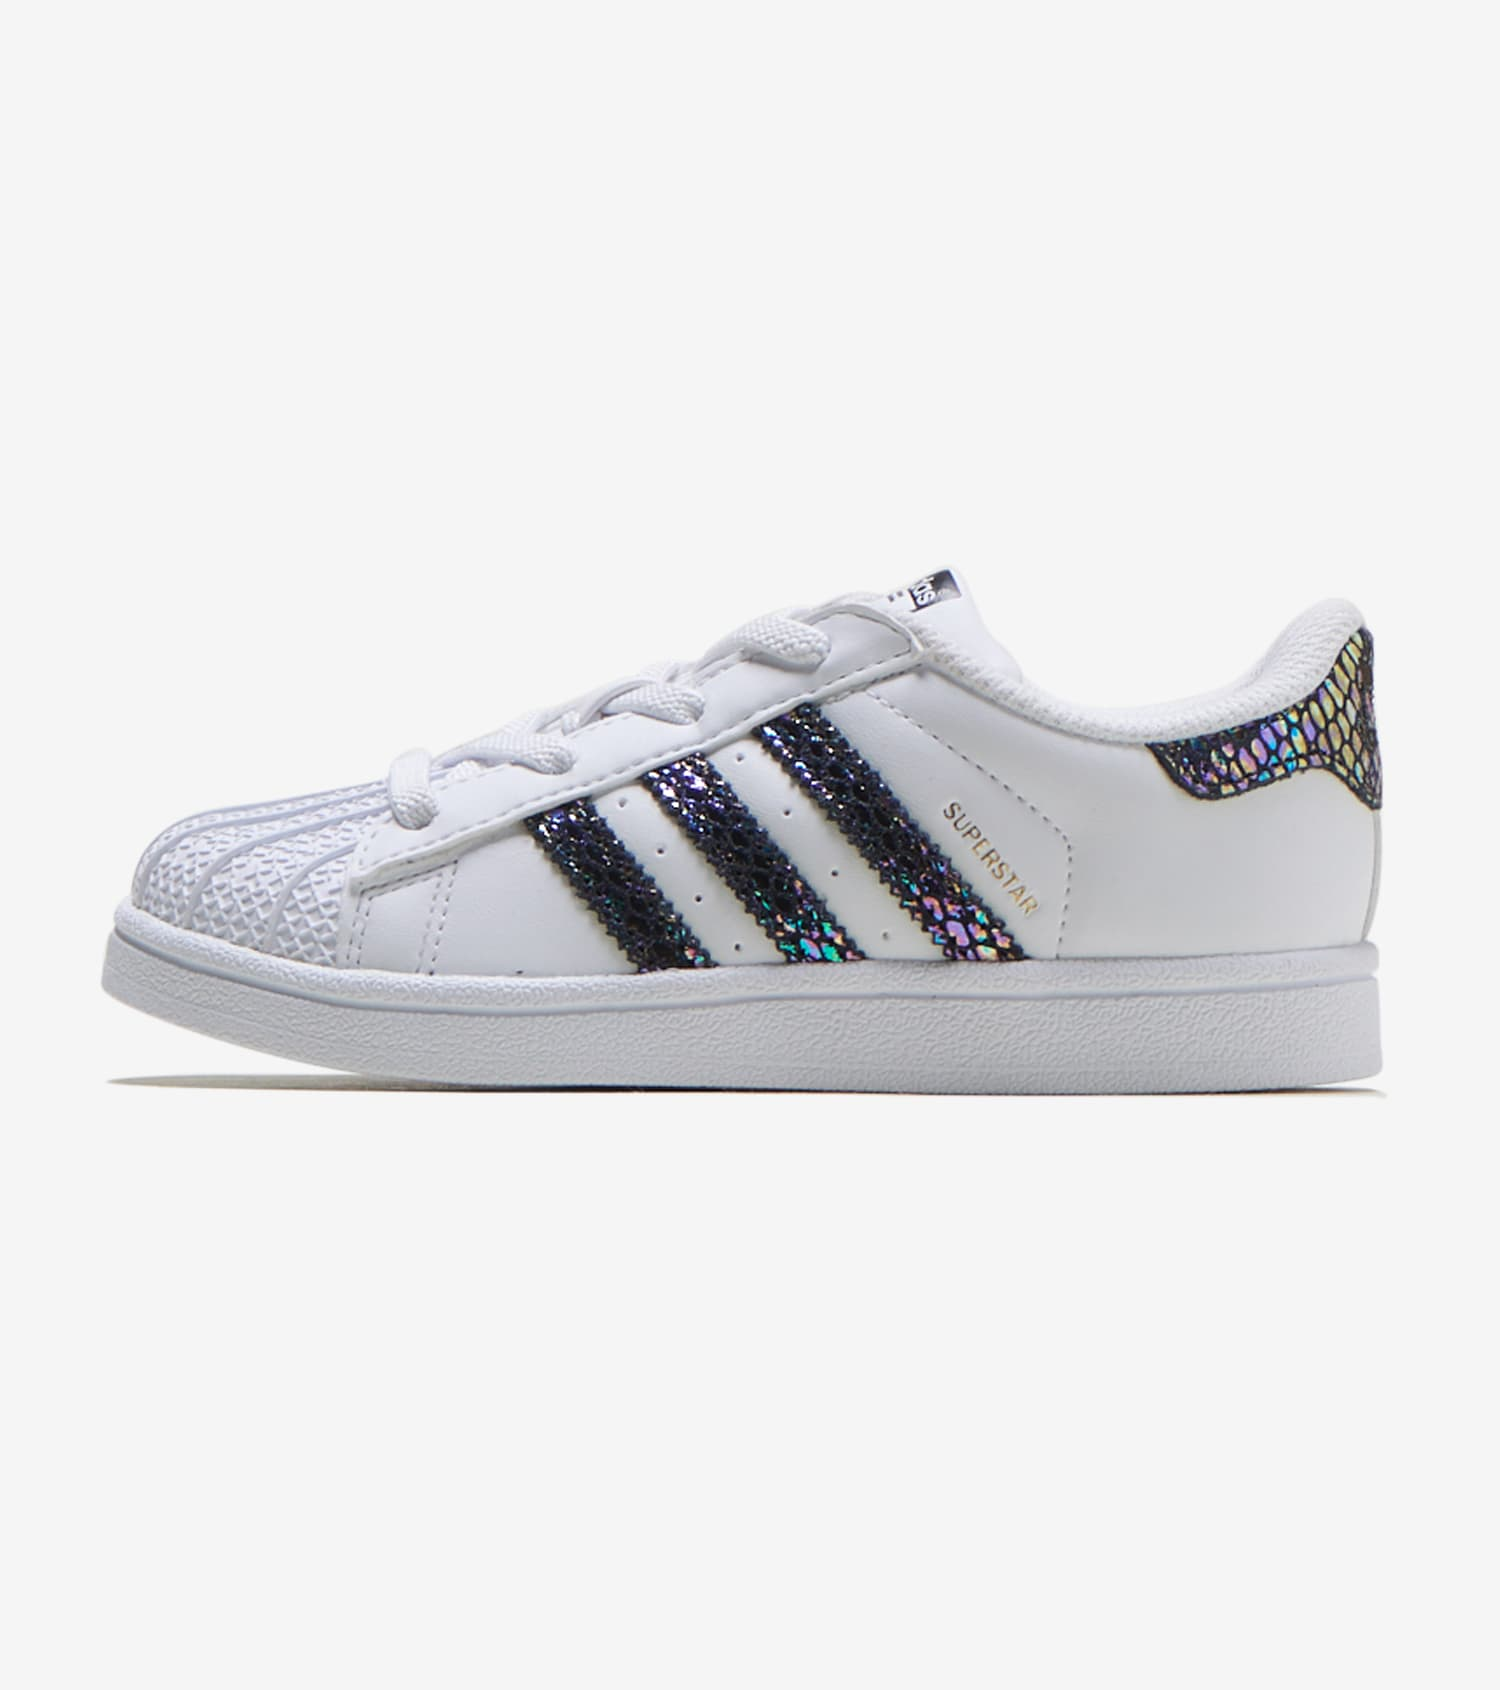 adidas superstar ii metallic white